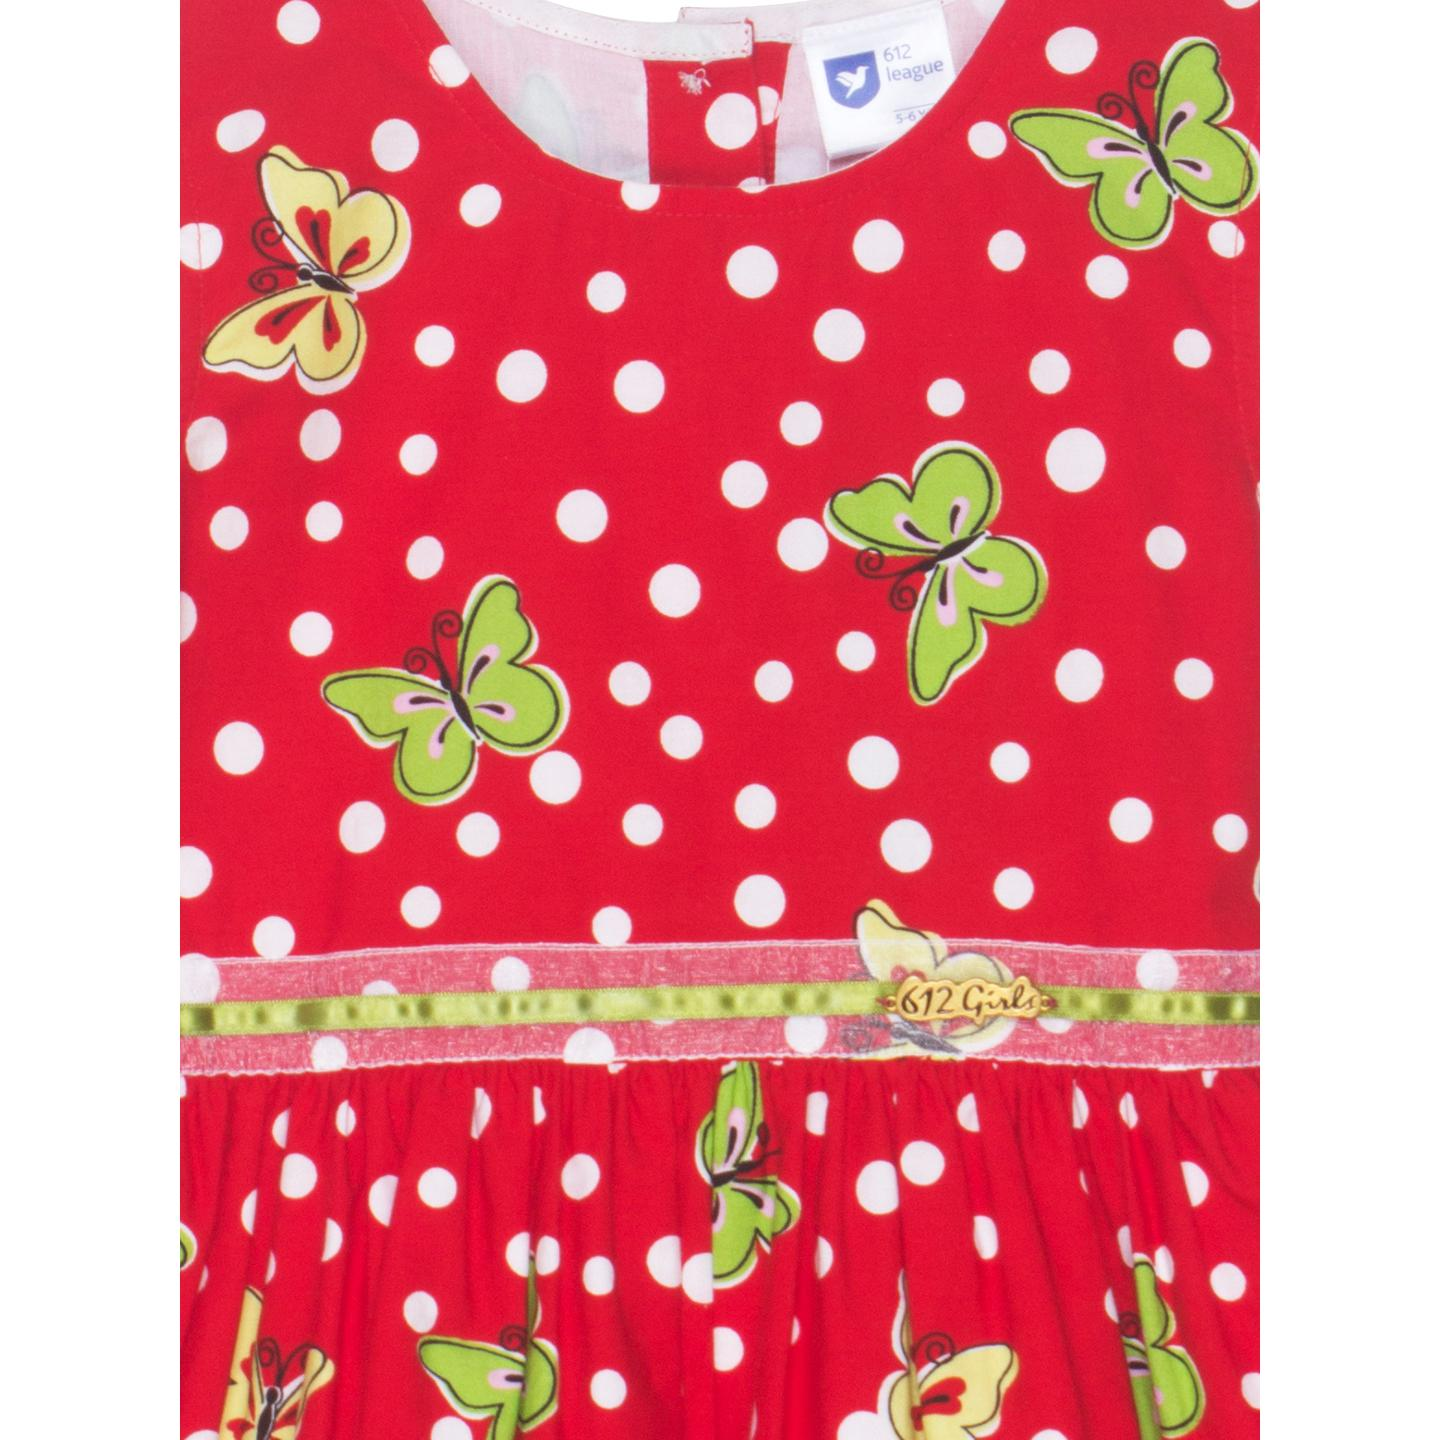 612 League - Red Colored Polka With Butterfly Printed Dress For Girls